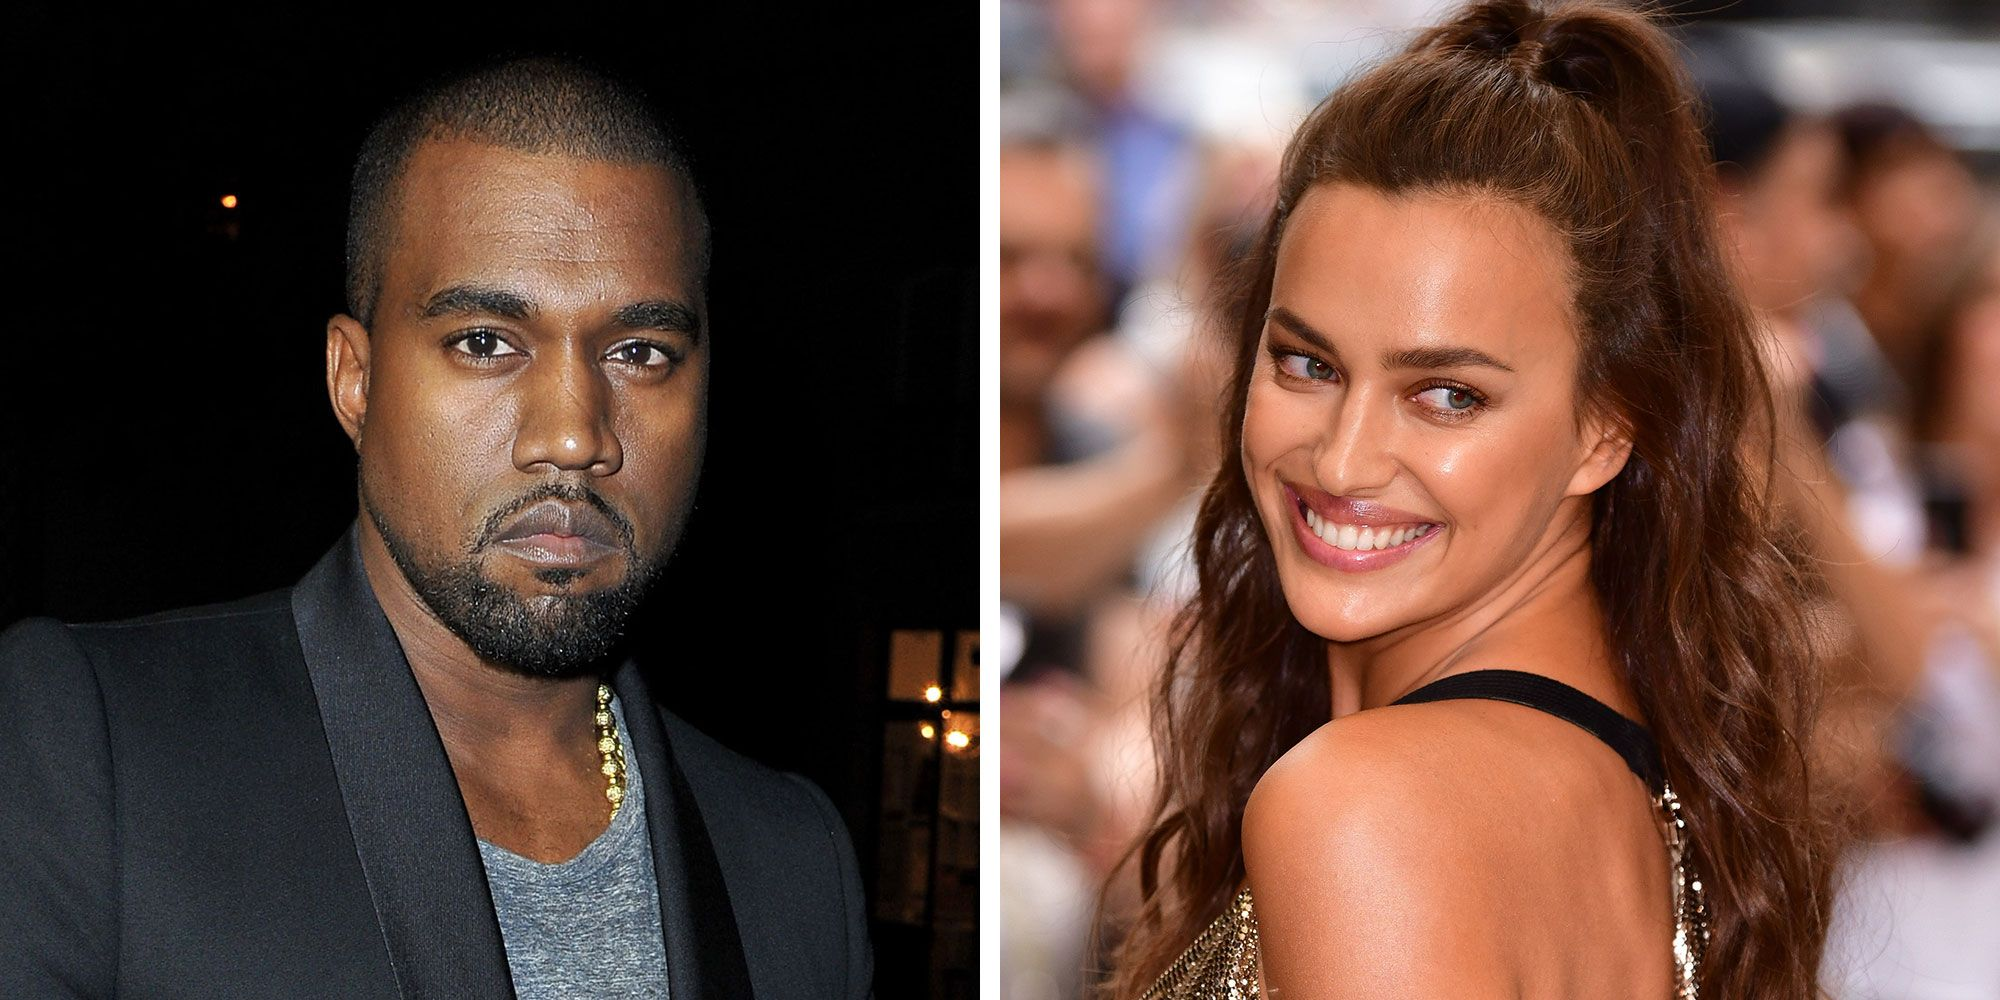 Kanye West and Irina Shayk reportedly 'have a lot in common' amid dating reports